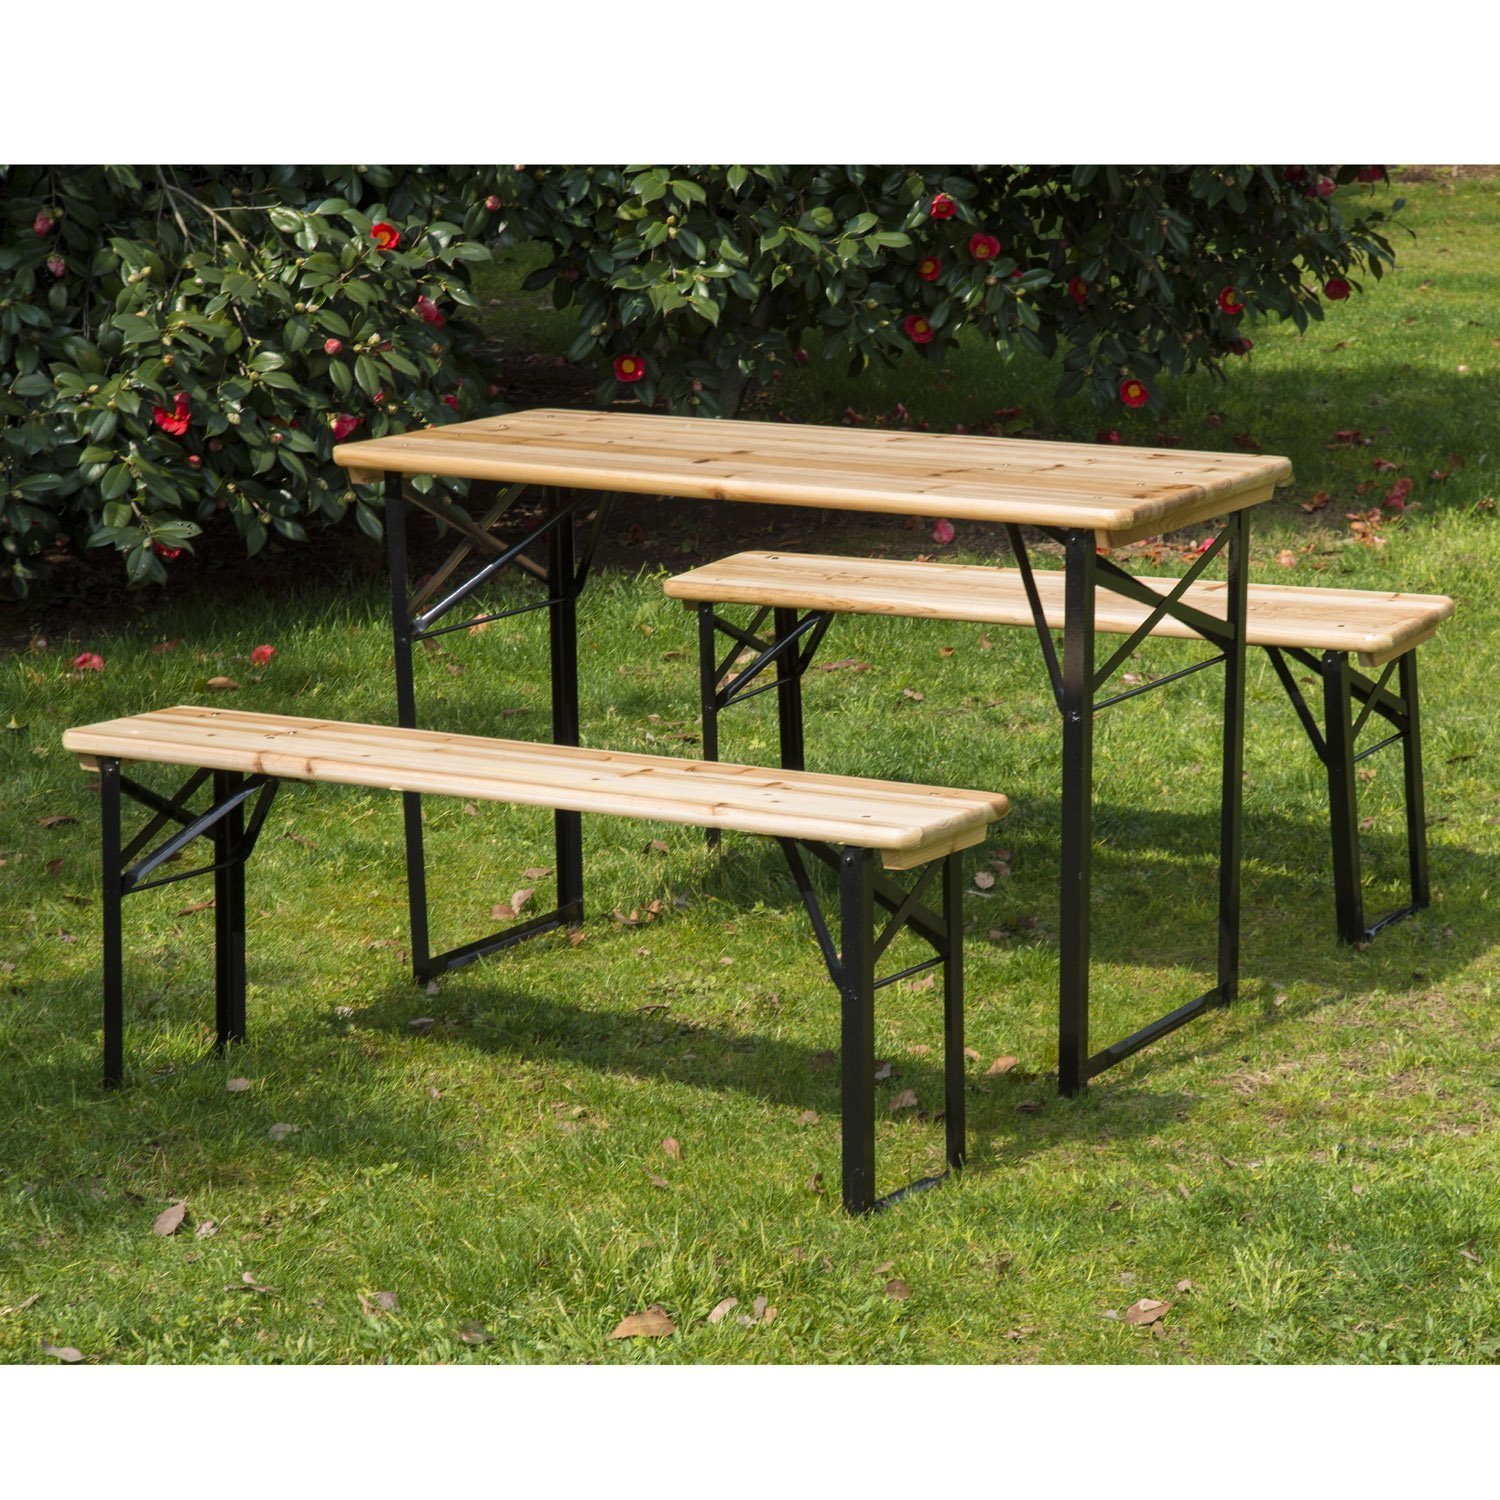 "Image of CAD $159.99 Outsunny 71"" Portable Heavy Duty 3 Pieces Picnic Table and Bench Set / 3pcs 71inch Beer Wood & Canada 25093570797"